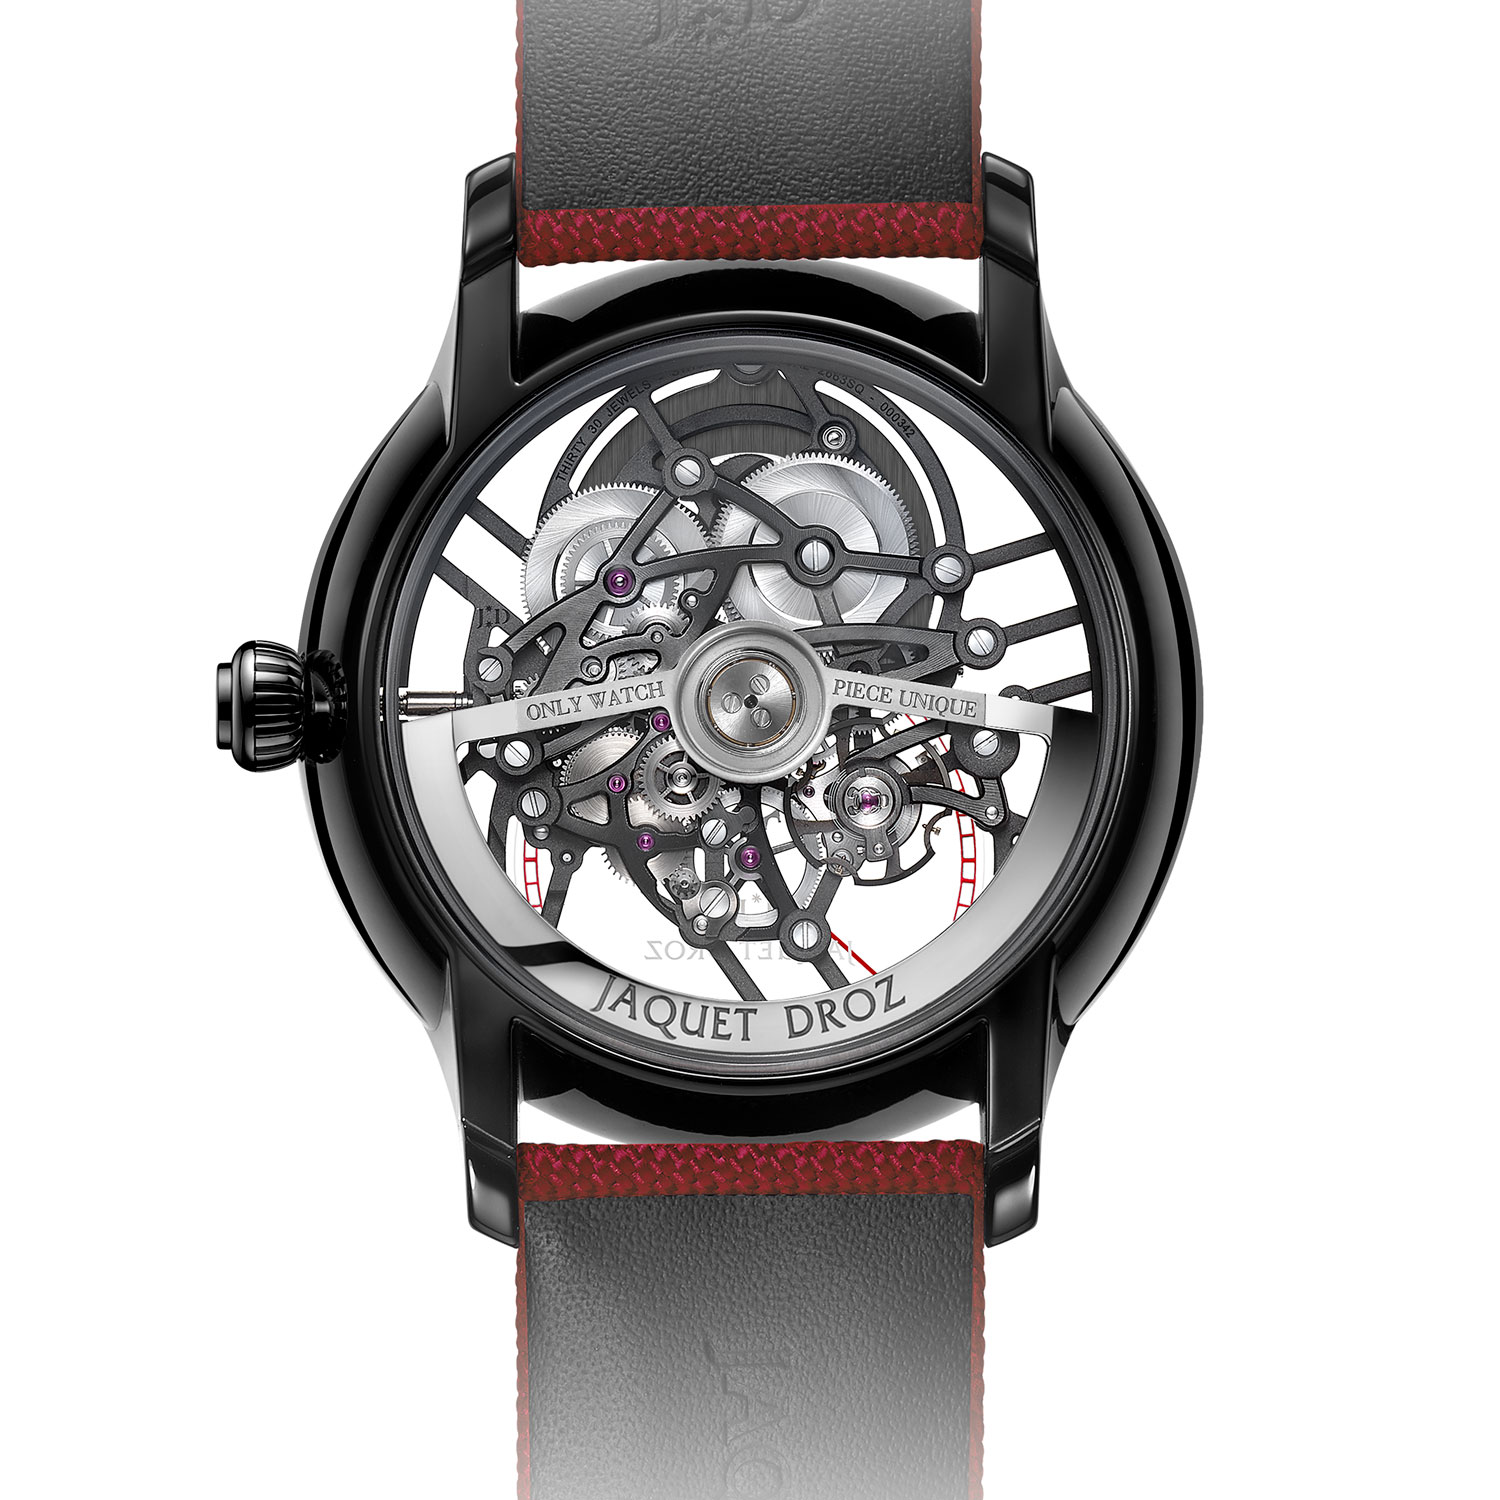 Jaquet Droz Grande Seconde Skelet-One Ceramic for Only Watch